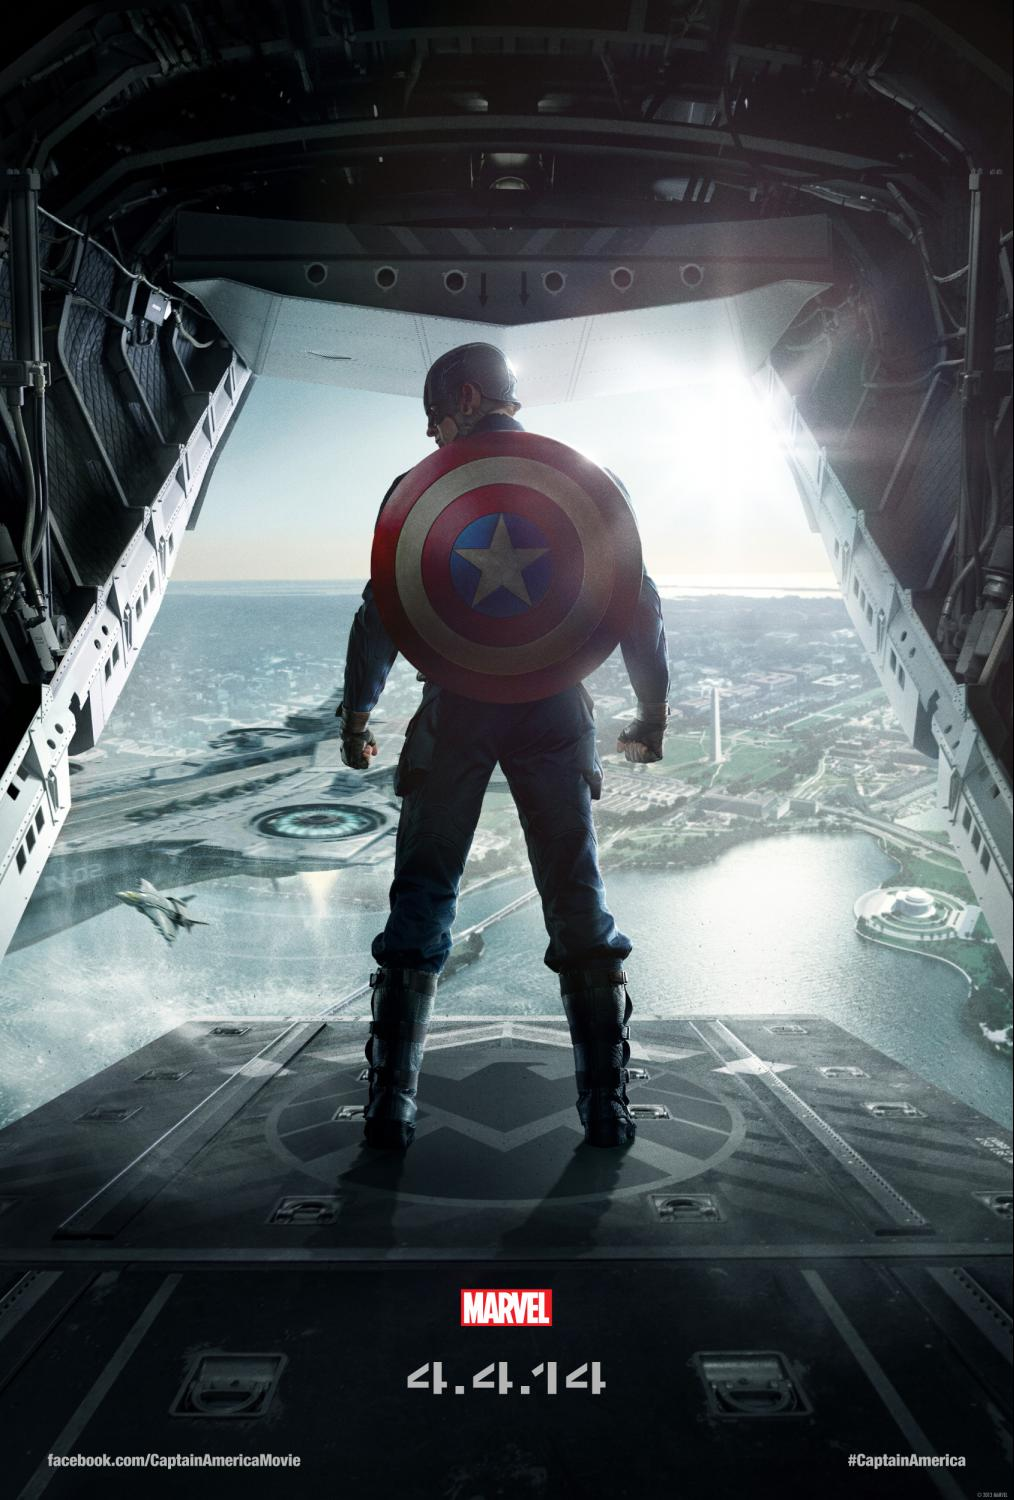 Captain America The Winter Soldier Chris Evans One Sheet Batman, Superman and Captain America to Showdown in Summer 2016